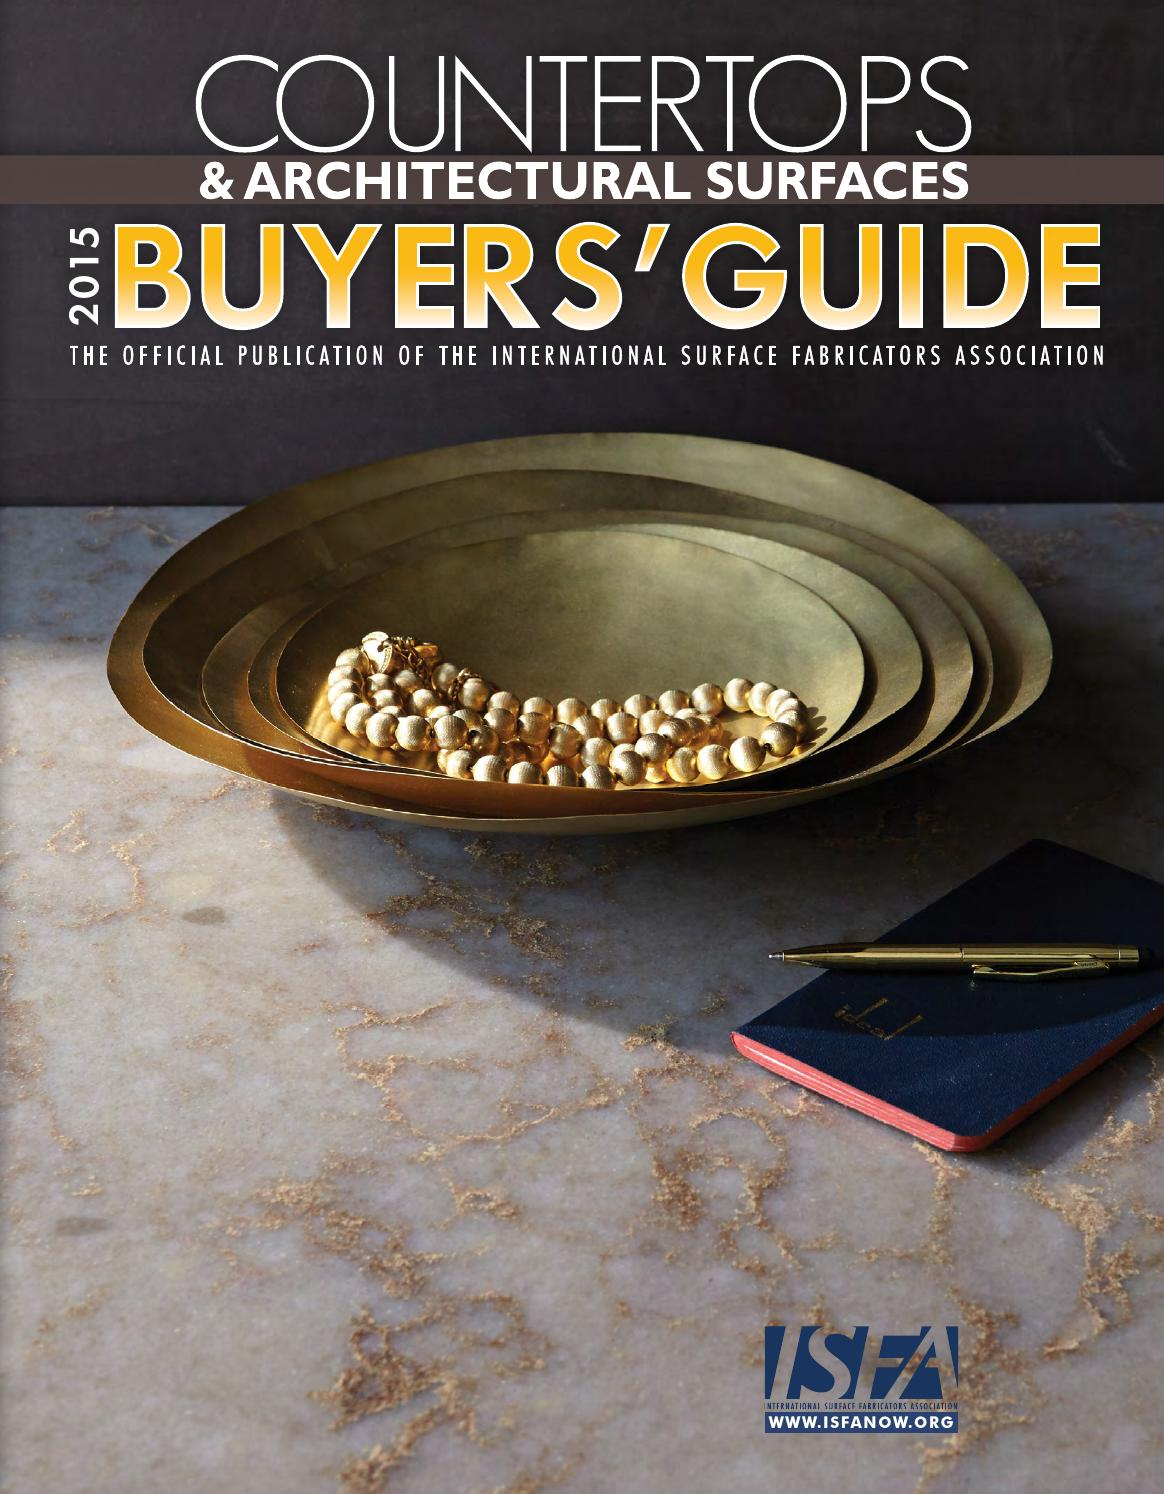 Isfa countertops architectural surfaces 2015 buyers guide by isfa isfa countertops architectural surfaces 2015 buyers guide by isfa issuu fandeluxe Choice Image